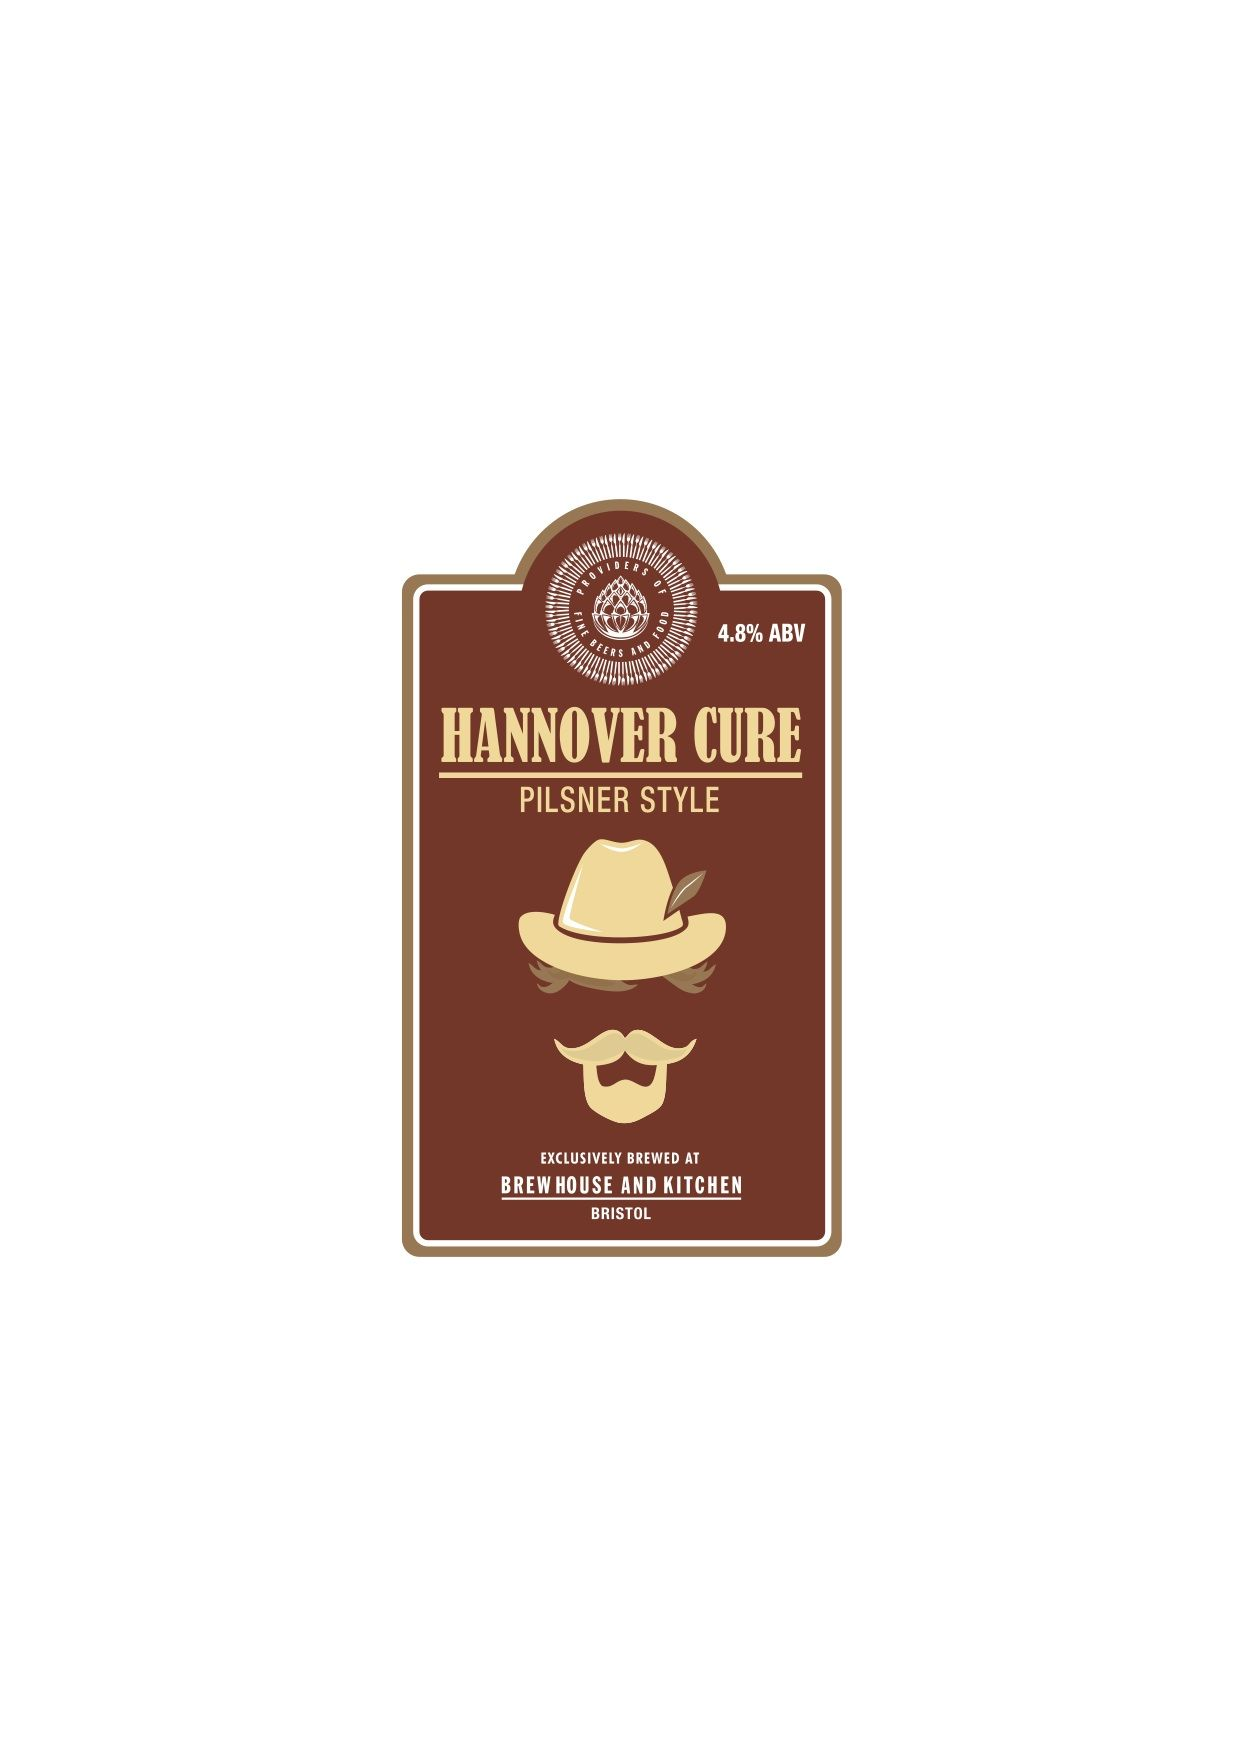 Hannover Cure – Lager – Pilsner Style 4.8% Hannover Cure – as one of ...